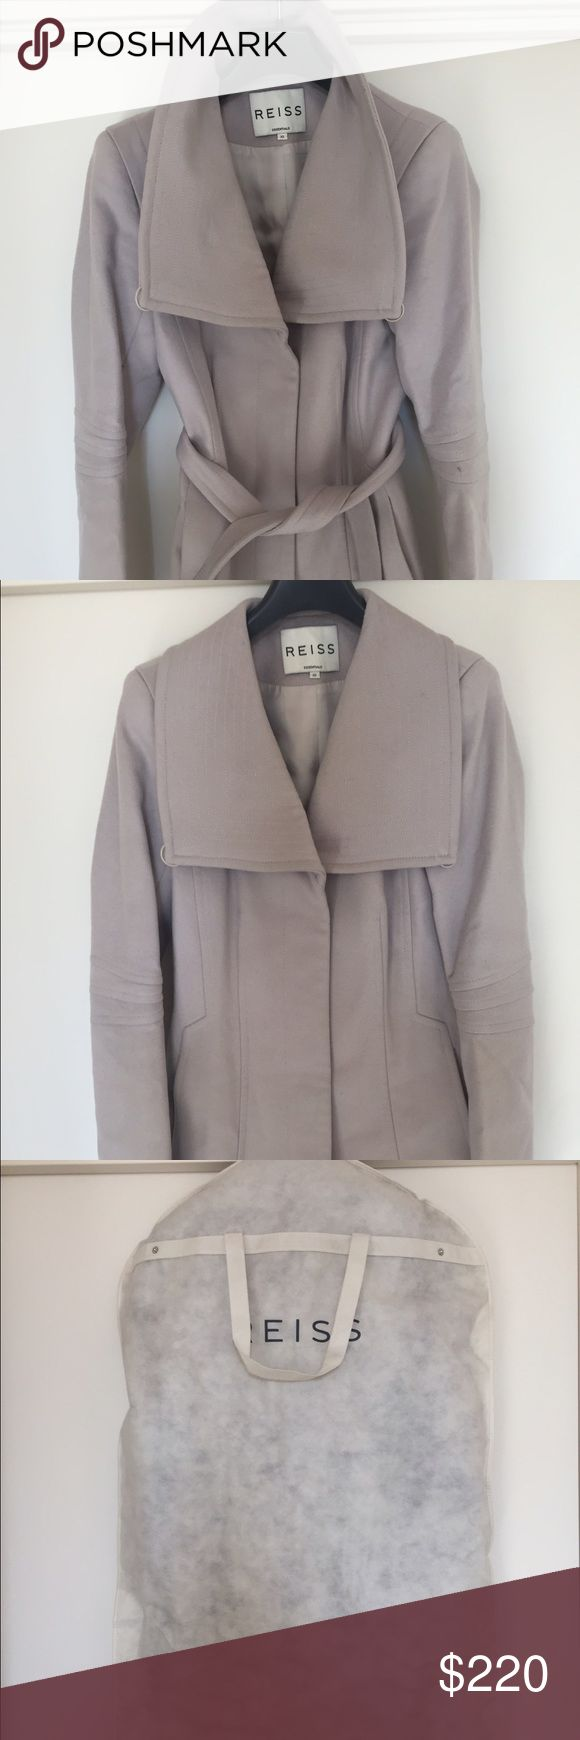 REISS Jacket Wool REISS coat/ jacket. Beautiful soft pink color- wrap at waist style with gorgeous details on the arms and shoulders. Worn a moderate amount of times. Comes with original dust bag and hanger from REISS Reiss Jackets & Coats Pea Coats